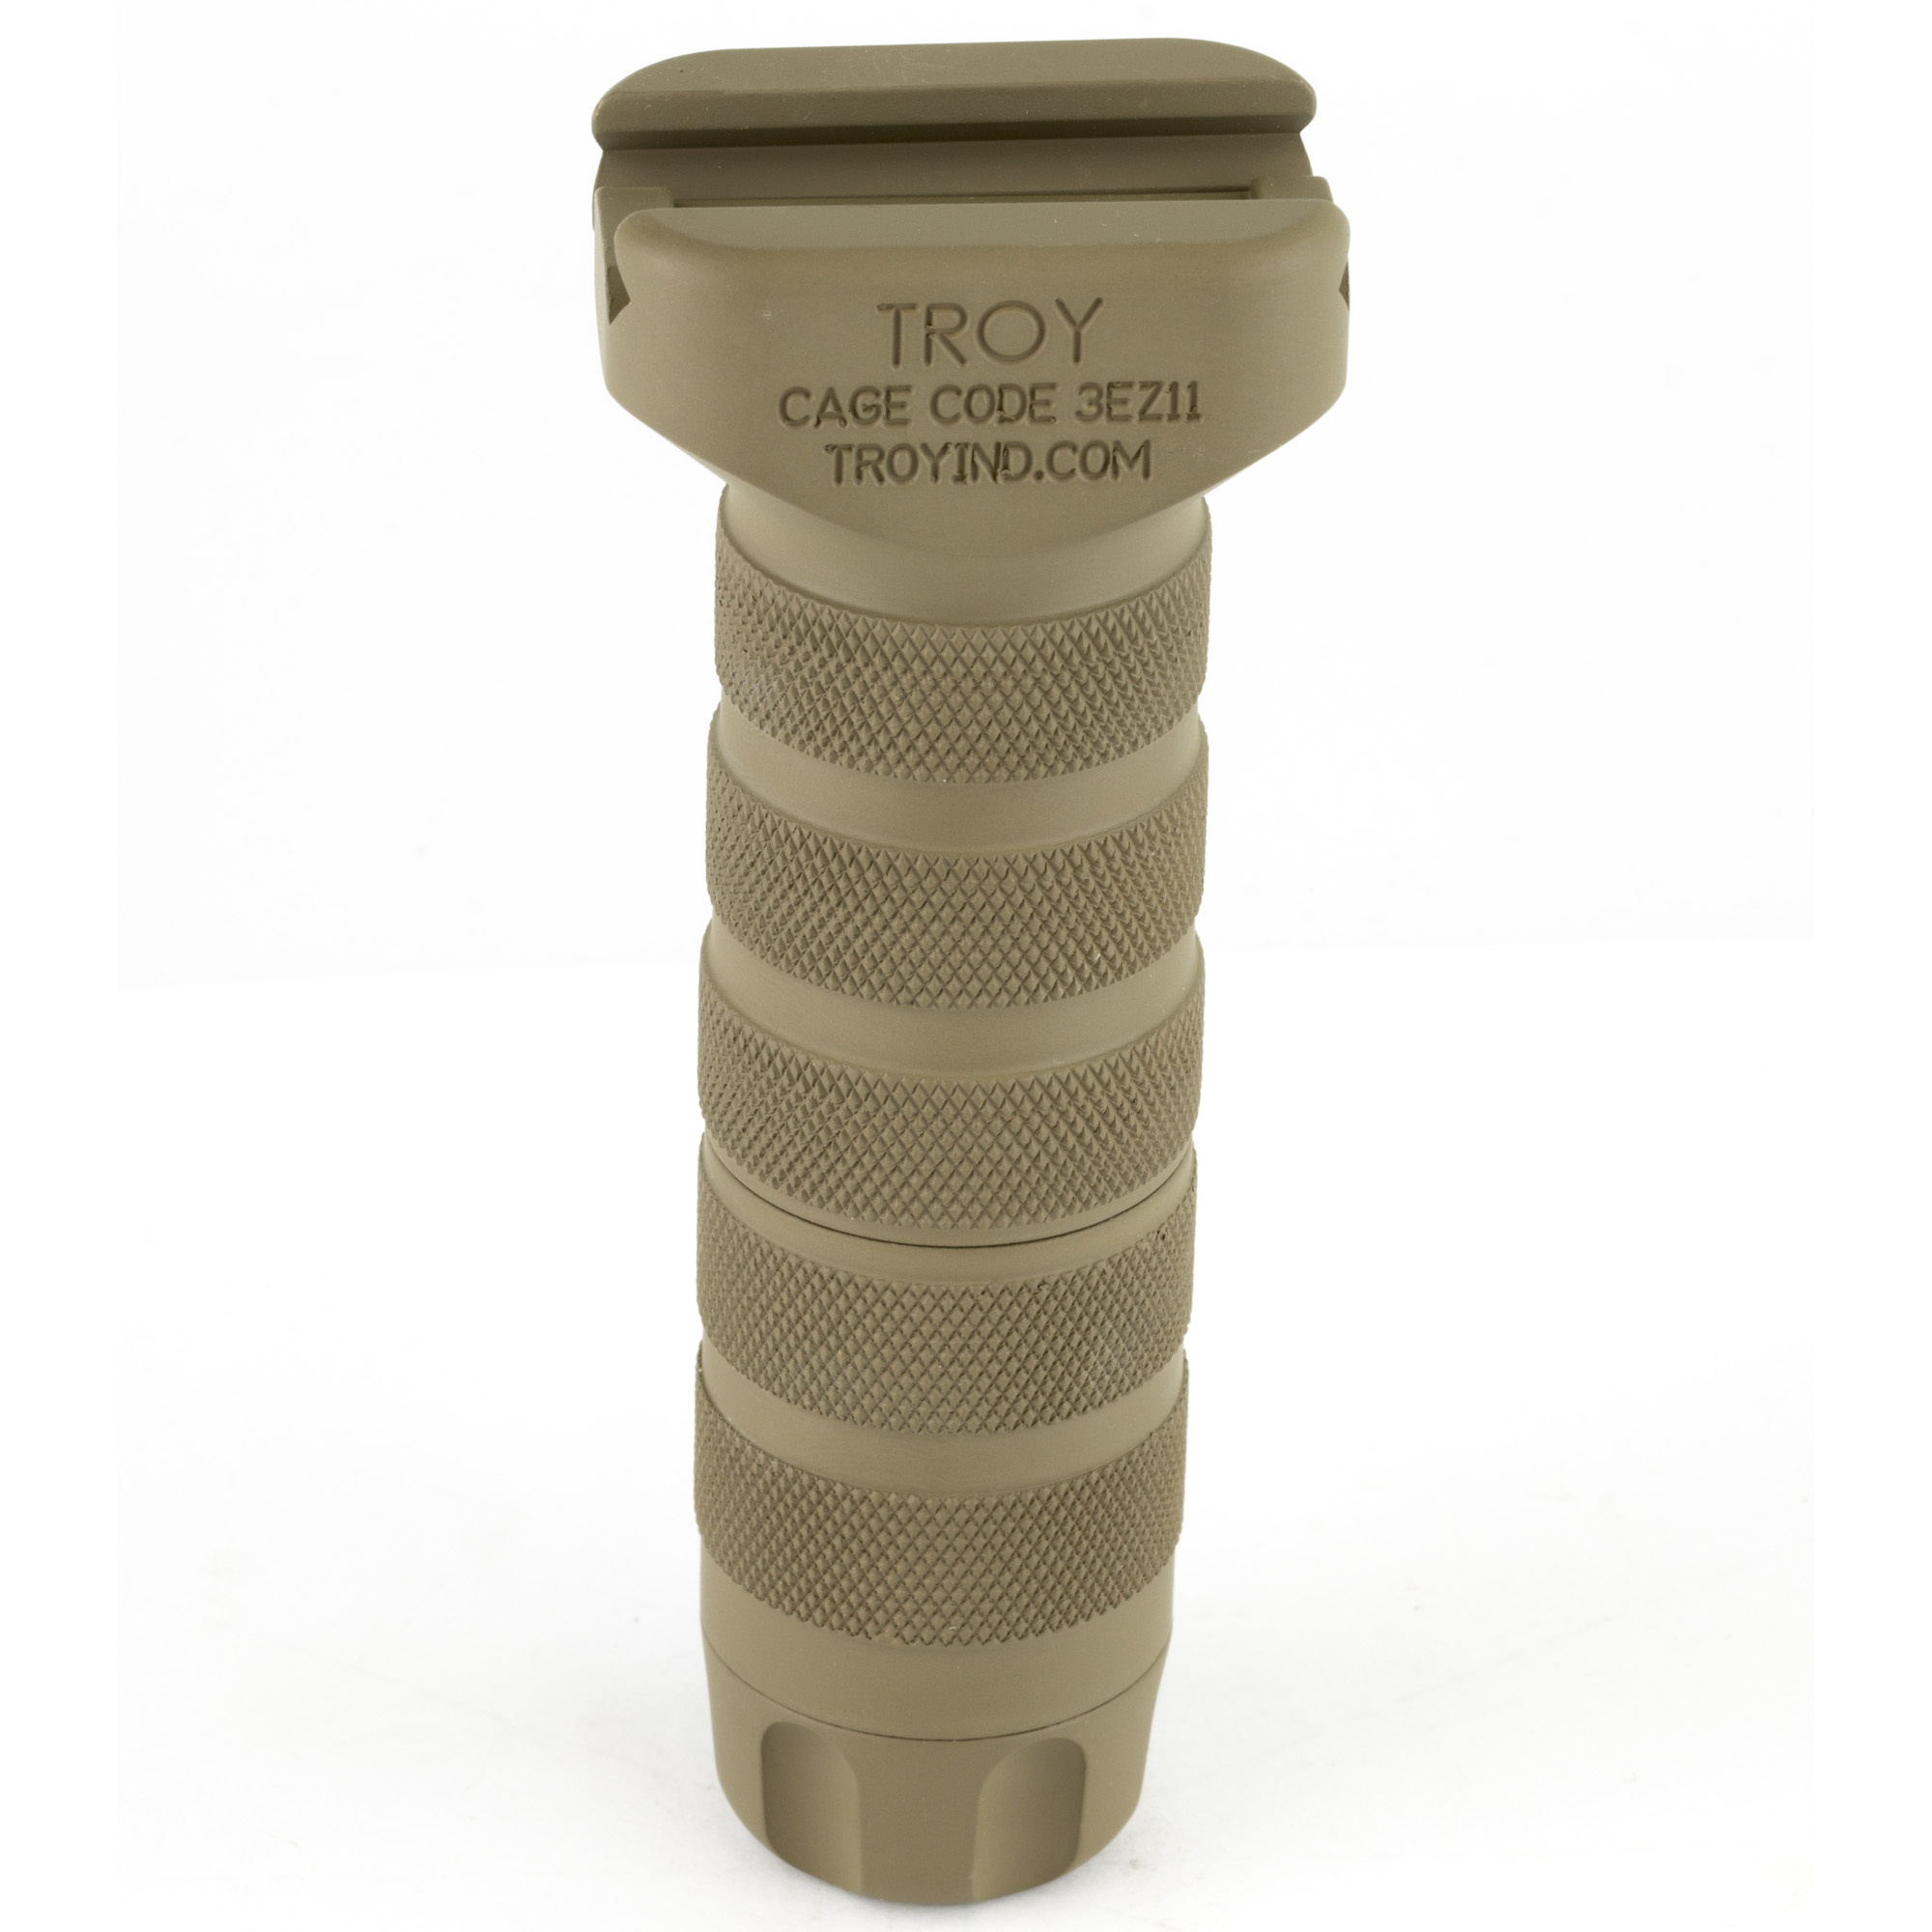 """Don't lose your grip when things get dirty. The Troy Modular Combat Grips offer versatility"""" unmatched durability and outstanding ergonomics in a grip that complements all Picatinny rail systems."""